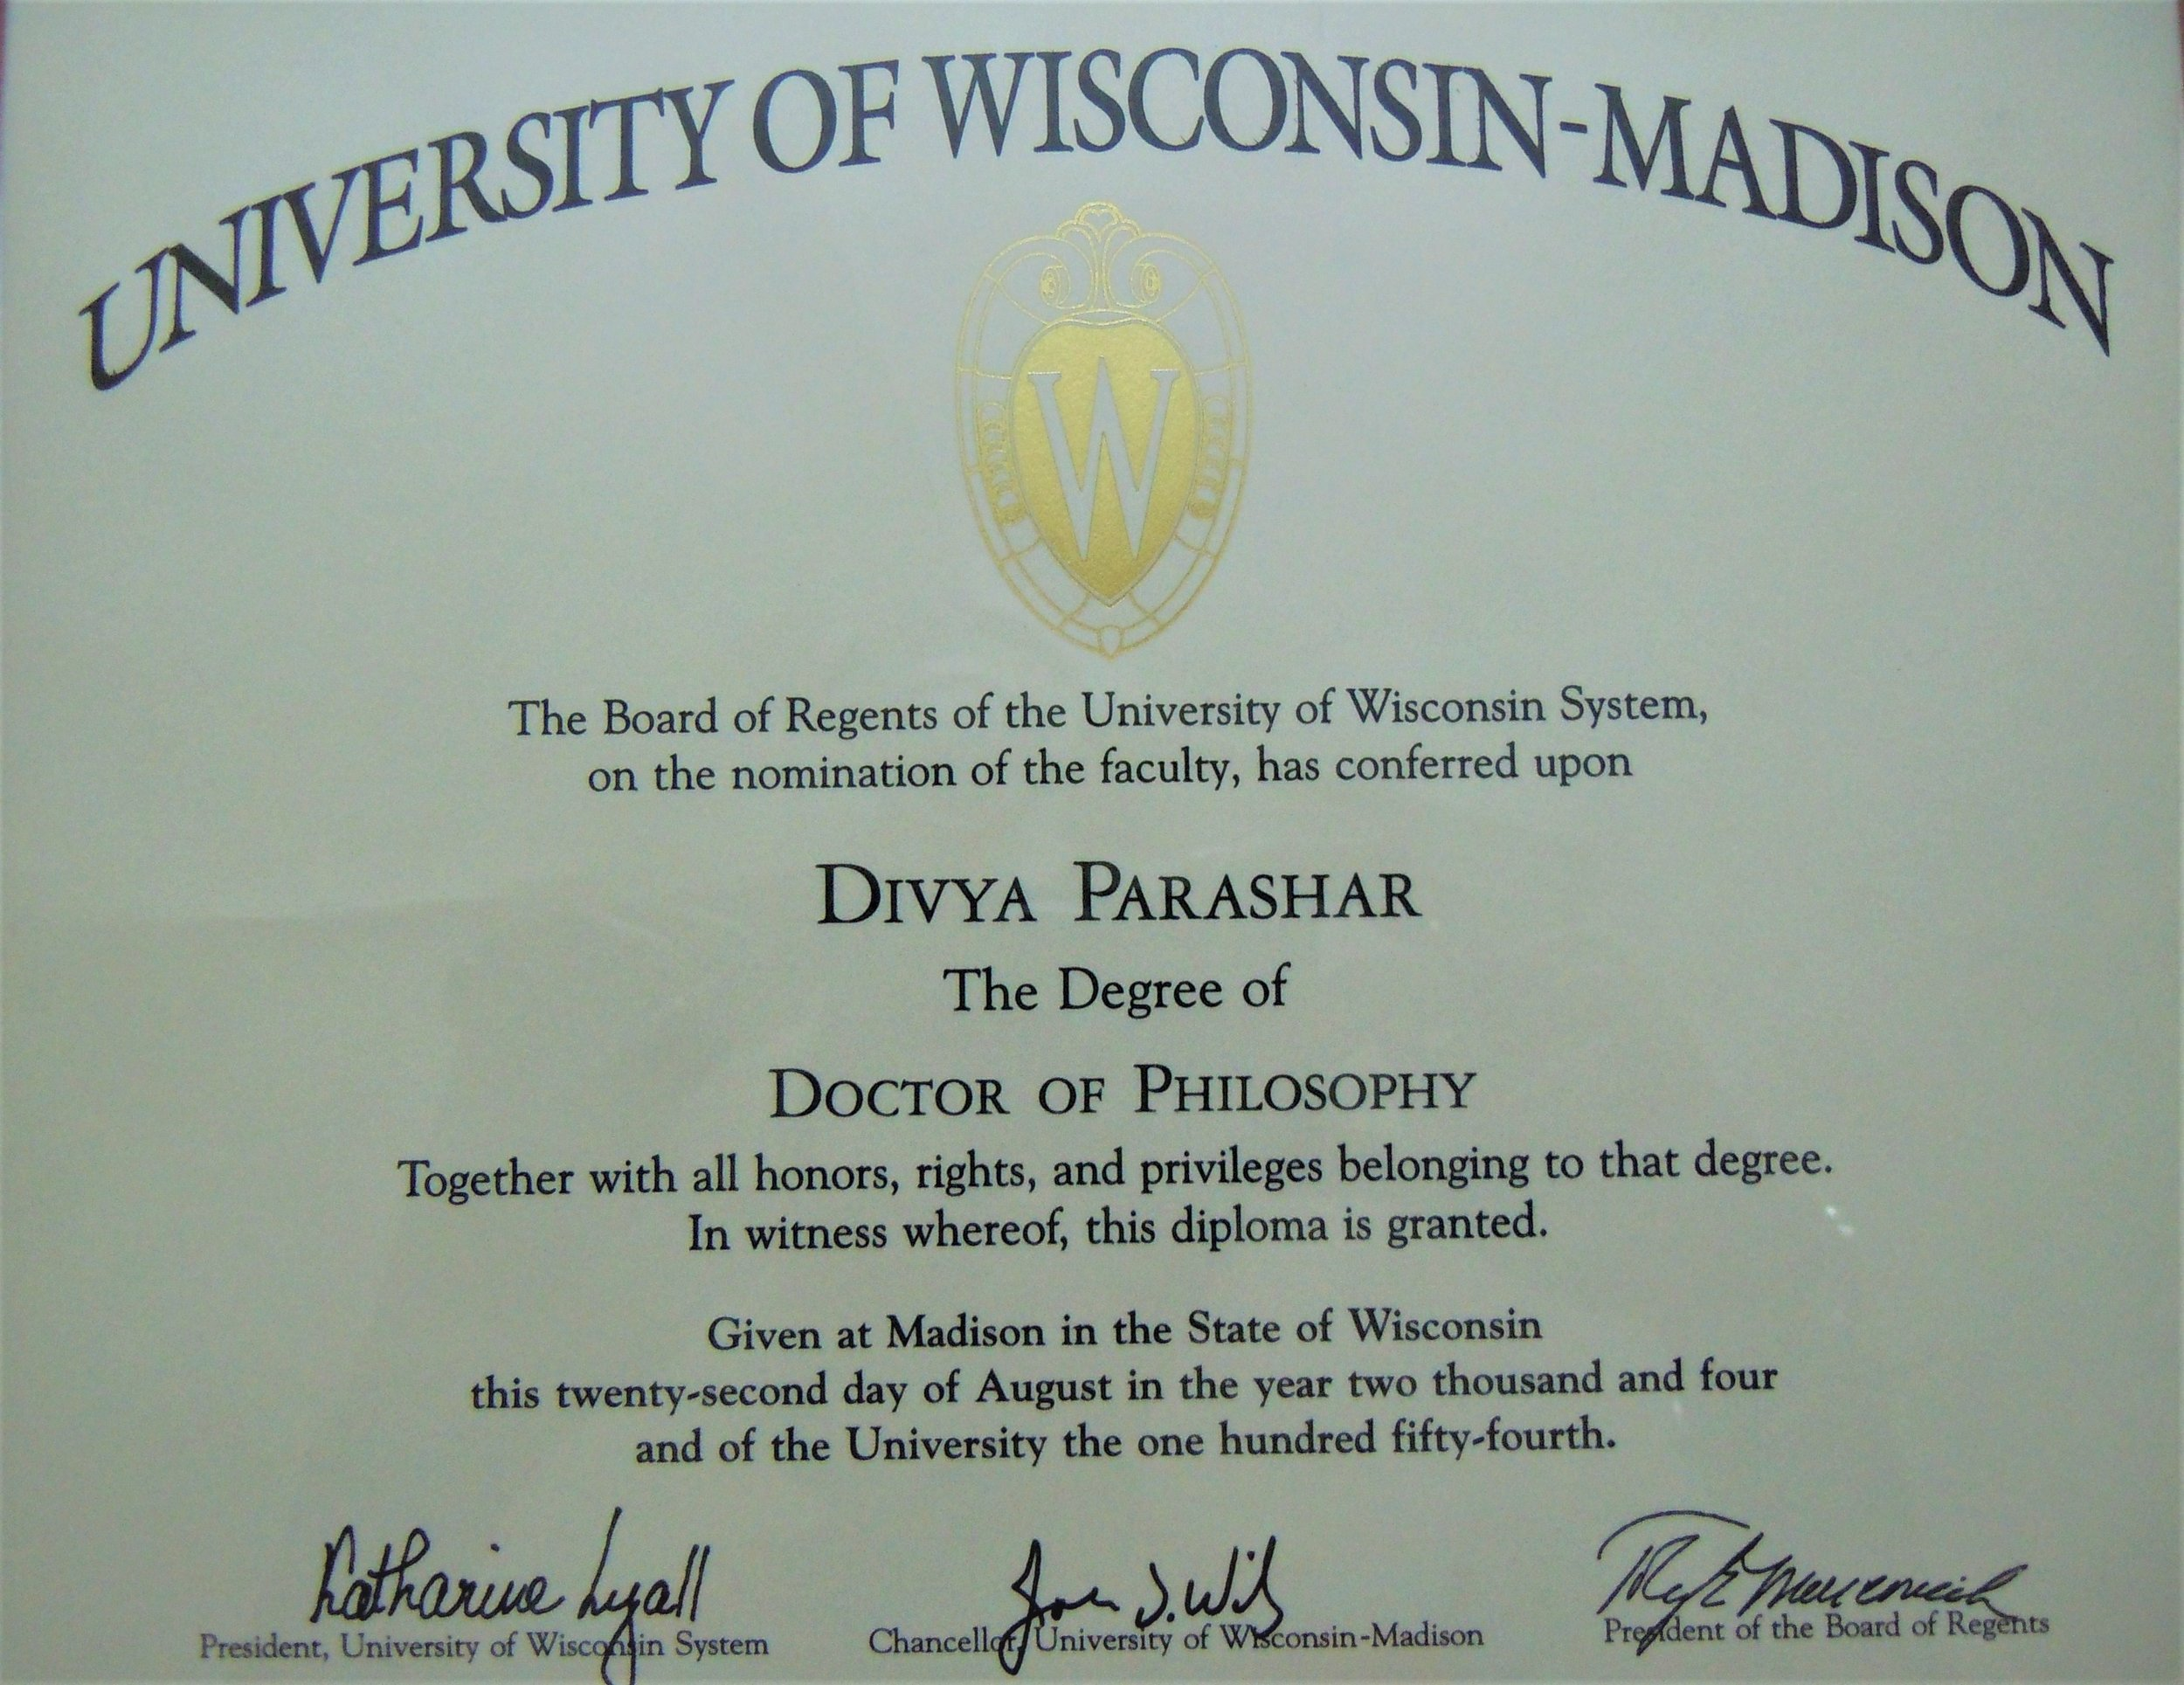 EDUCATIONAL BACKGROUND - I obtained my Ph.D. in Rehabilitation Psychology at the University of Wisconsin-Madison, USA in 2004. Prior to that I did my Masters and Bachelors in Applied (Clinical Psychology) from the University of Delhi. Till recently I was heading the Psychology Department at the Indian Spinal Injuries Centre, New Delhi. In addition to my clinical responsibilities, I have been an academician, having worked as an Asst. Professor at the Louisiana State University Health Sciences Centre, USA.